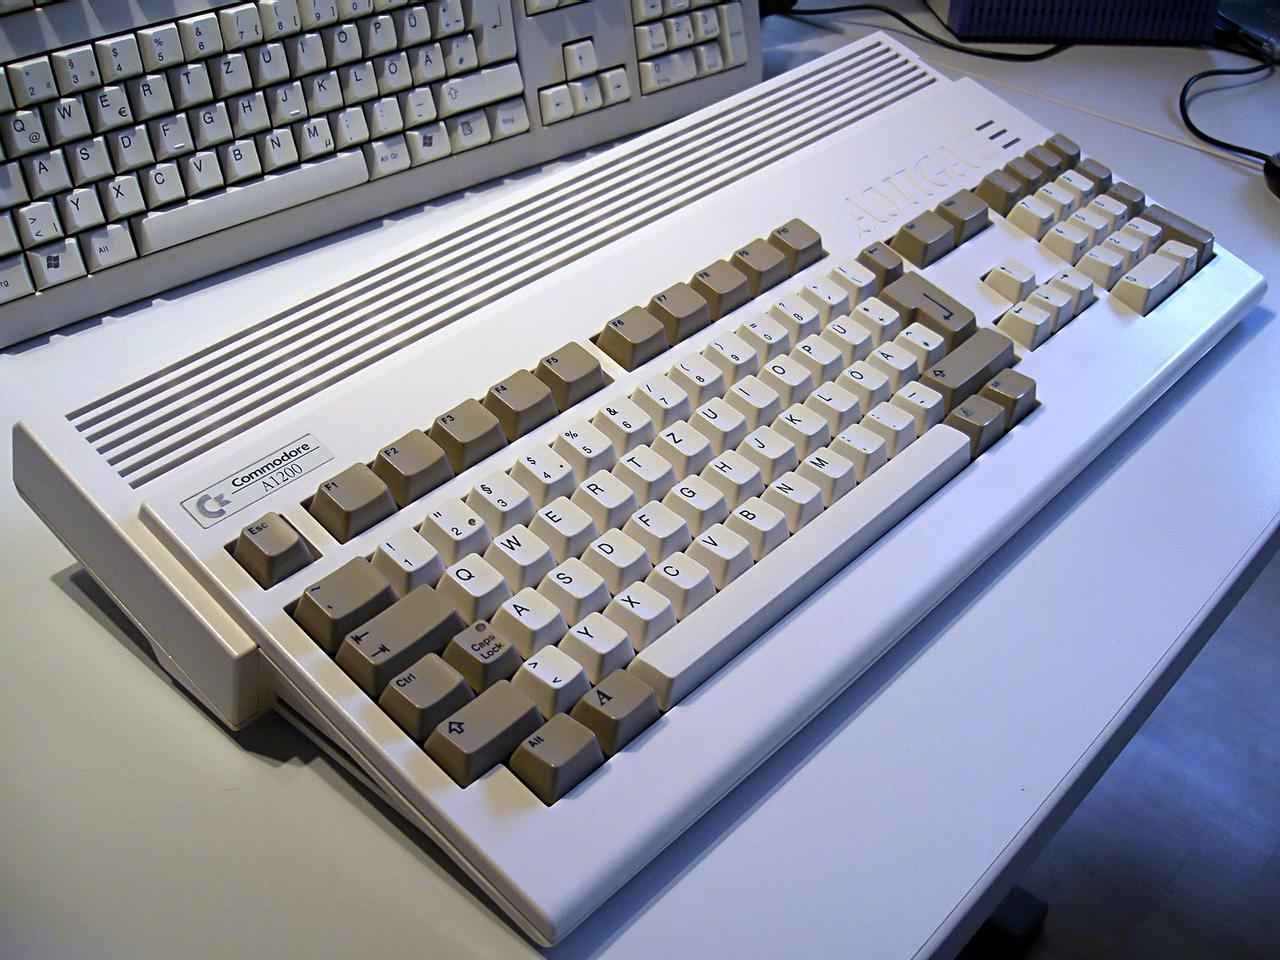 An Amiga 1200, originally issued in 1992 with a Motorola 68EC020 14MHz processor and 2MB of RAM